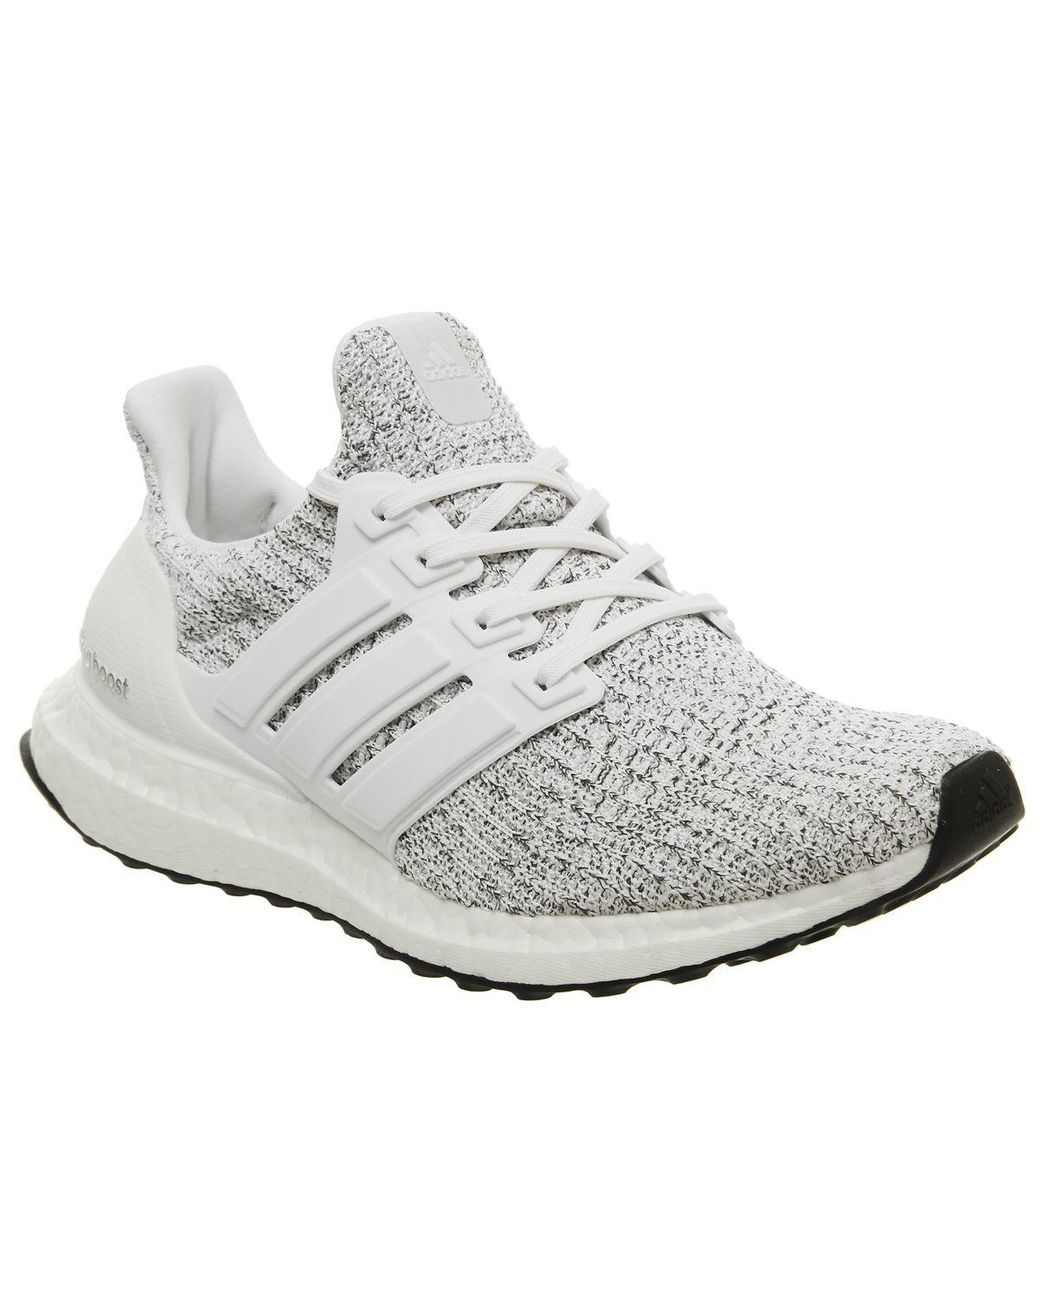 ca87f8693 adidas Ultra Boost Trainers in White - Lyst